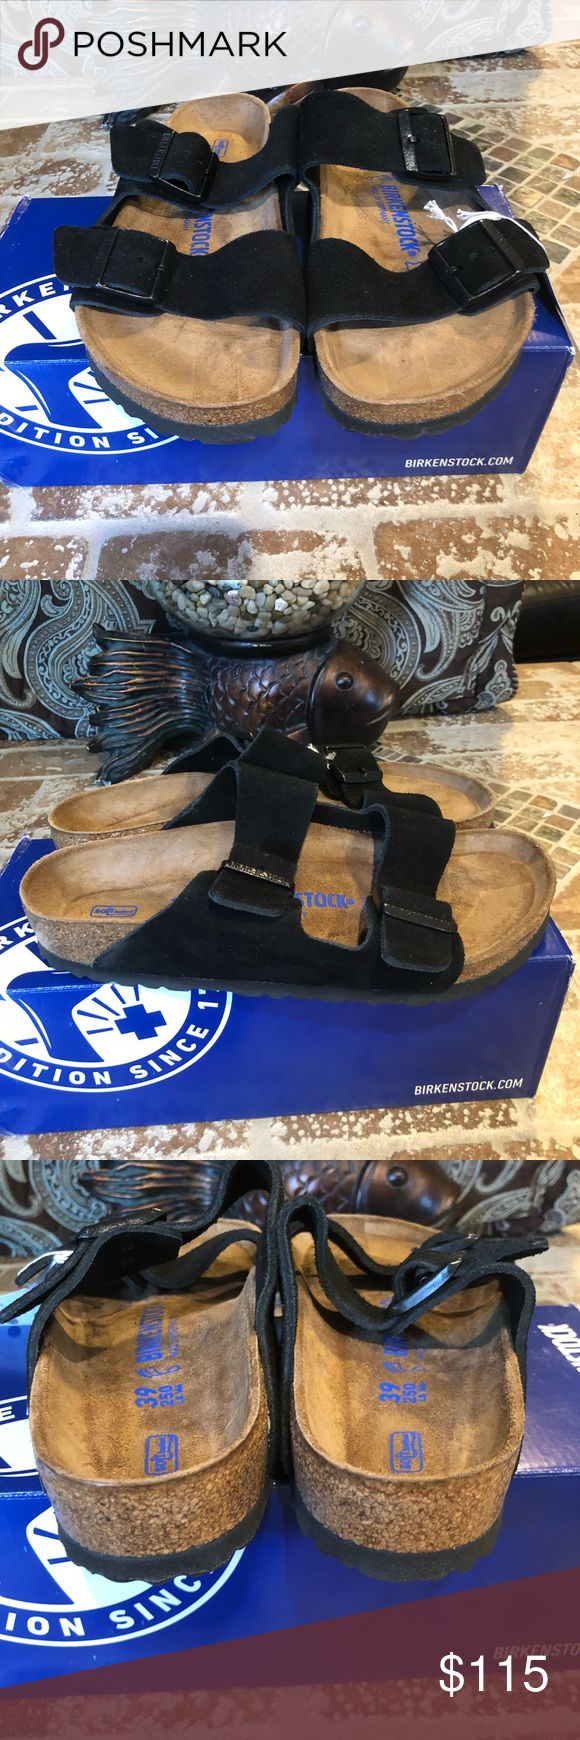 Birkenstock NWT Size 39 L8 Brand new. Original box Arizona Suede Leather Soft Footbed Black The often imitated, never duplicated, category-defining, two-strap wonder from Birkenstock. A comfort legend and a fashion staple. With adjustable straps and a magical cork footbed that conforms to the shape of your foot, a truly custom fit is as effortless as the classic design. Birkenstock Shoes Sandals